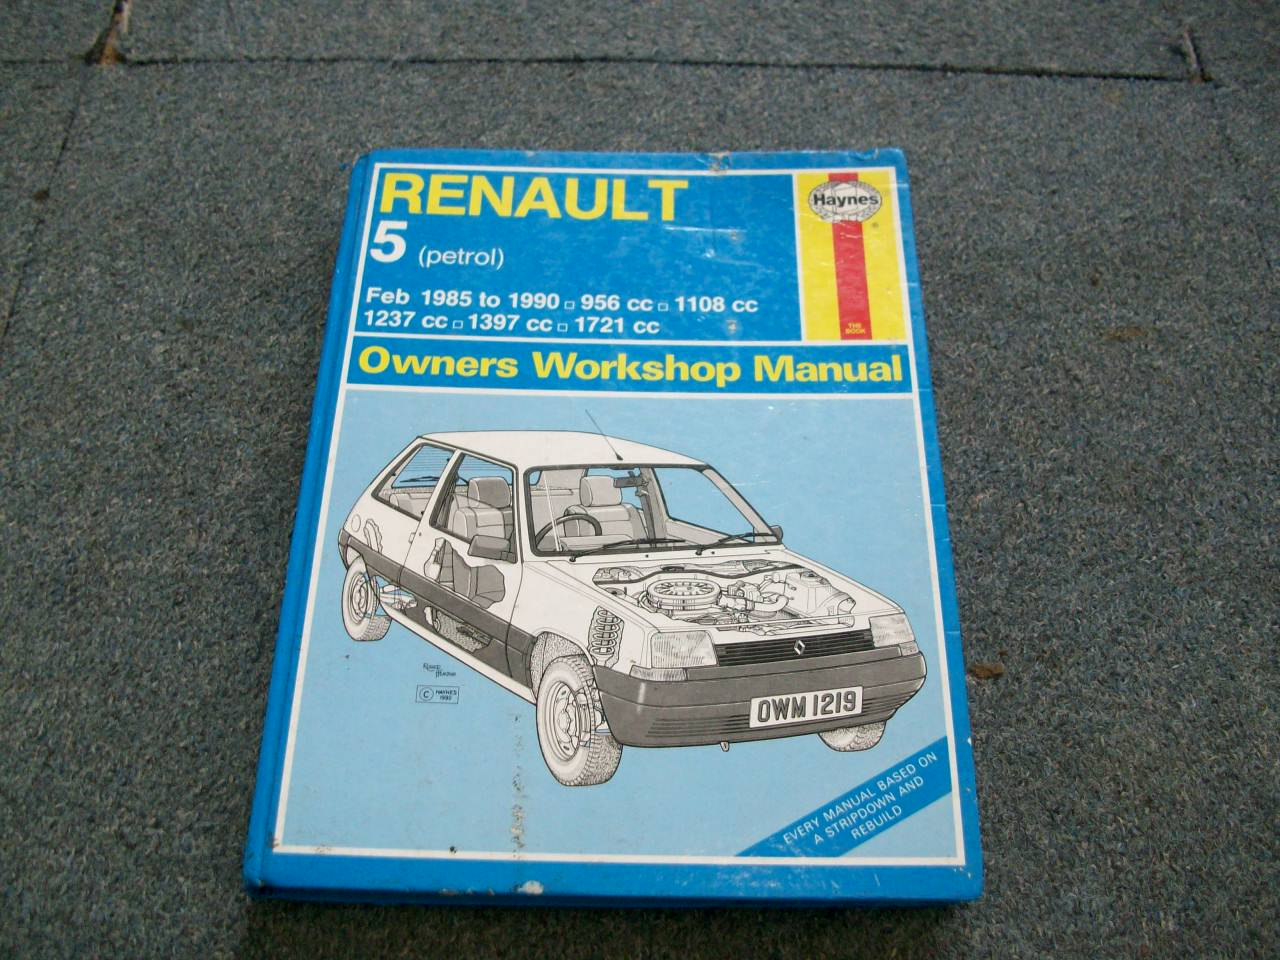 manuals gt turbo spares rh gt turbo spares co uk Haynes Manual for Quads renault 5 haynes manual